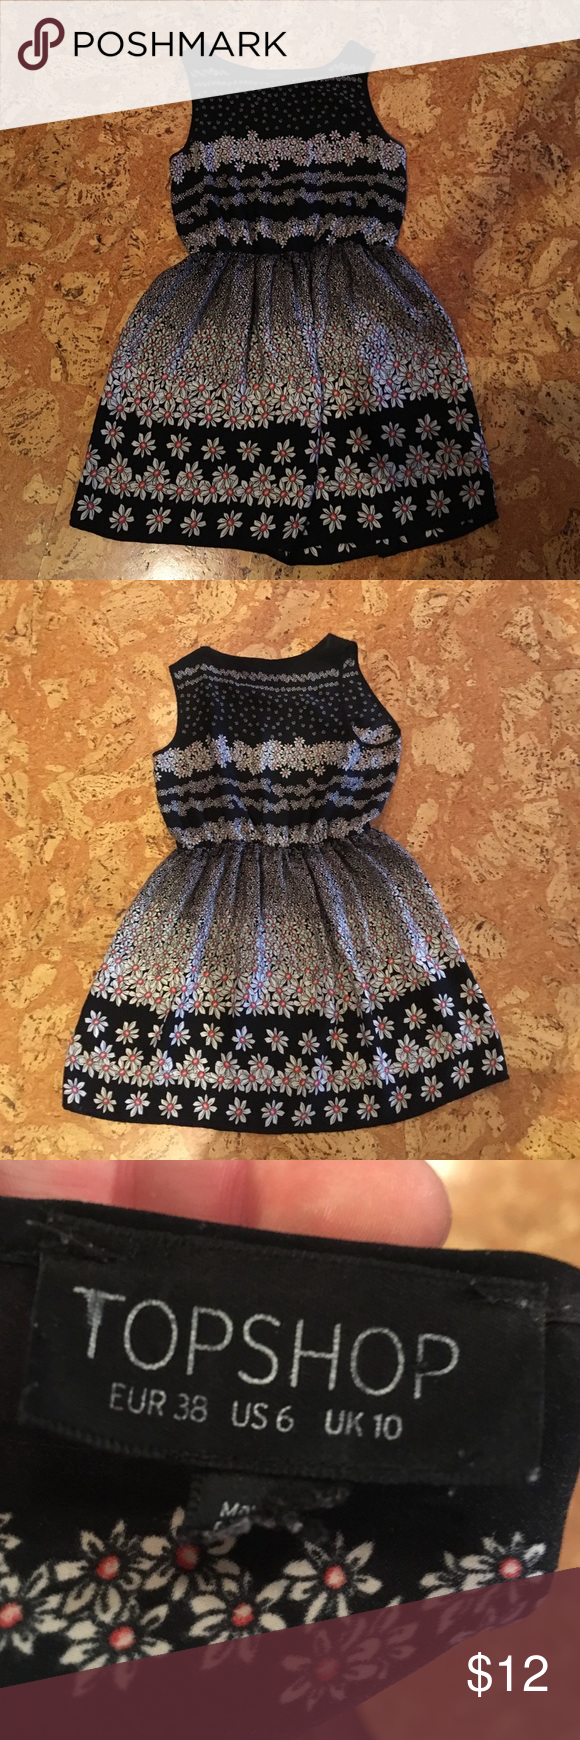 Daisy Topshop Dress Size 6 US dress from Topshop. Super cute daisy pattern and a cut that's flattering on any body type. In great shape and worn rarely. Cannot recommend this dress more for brightening your day! 🌸🌸🌸 Topshop Dresses